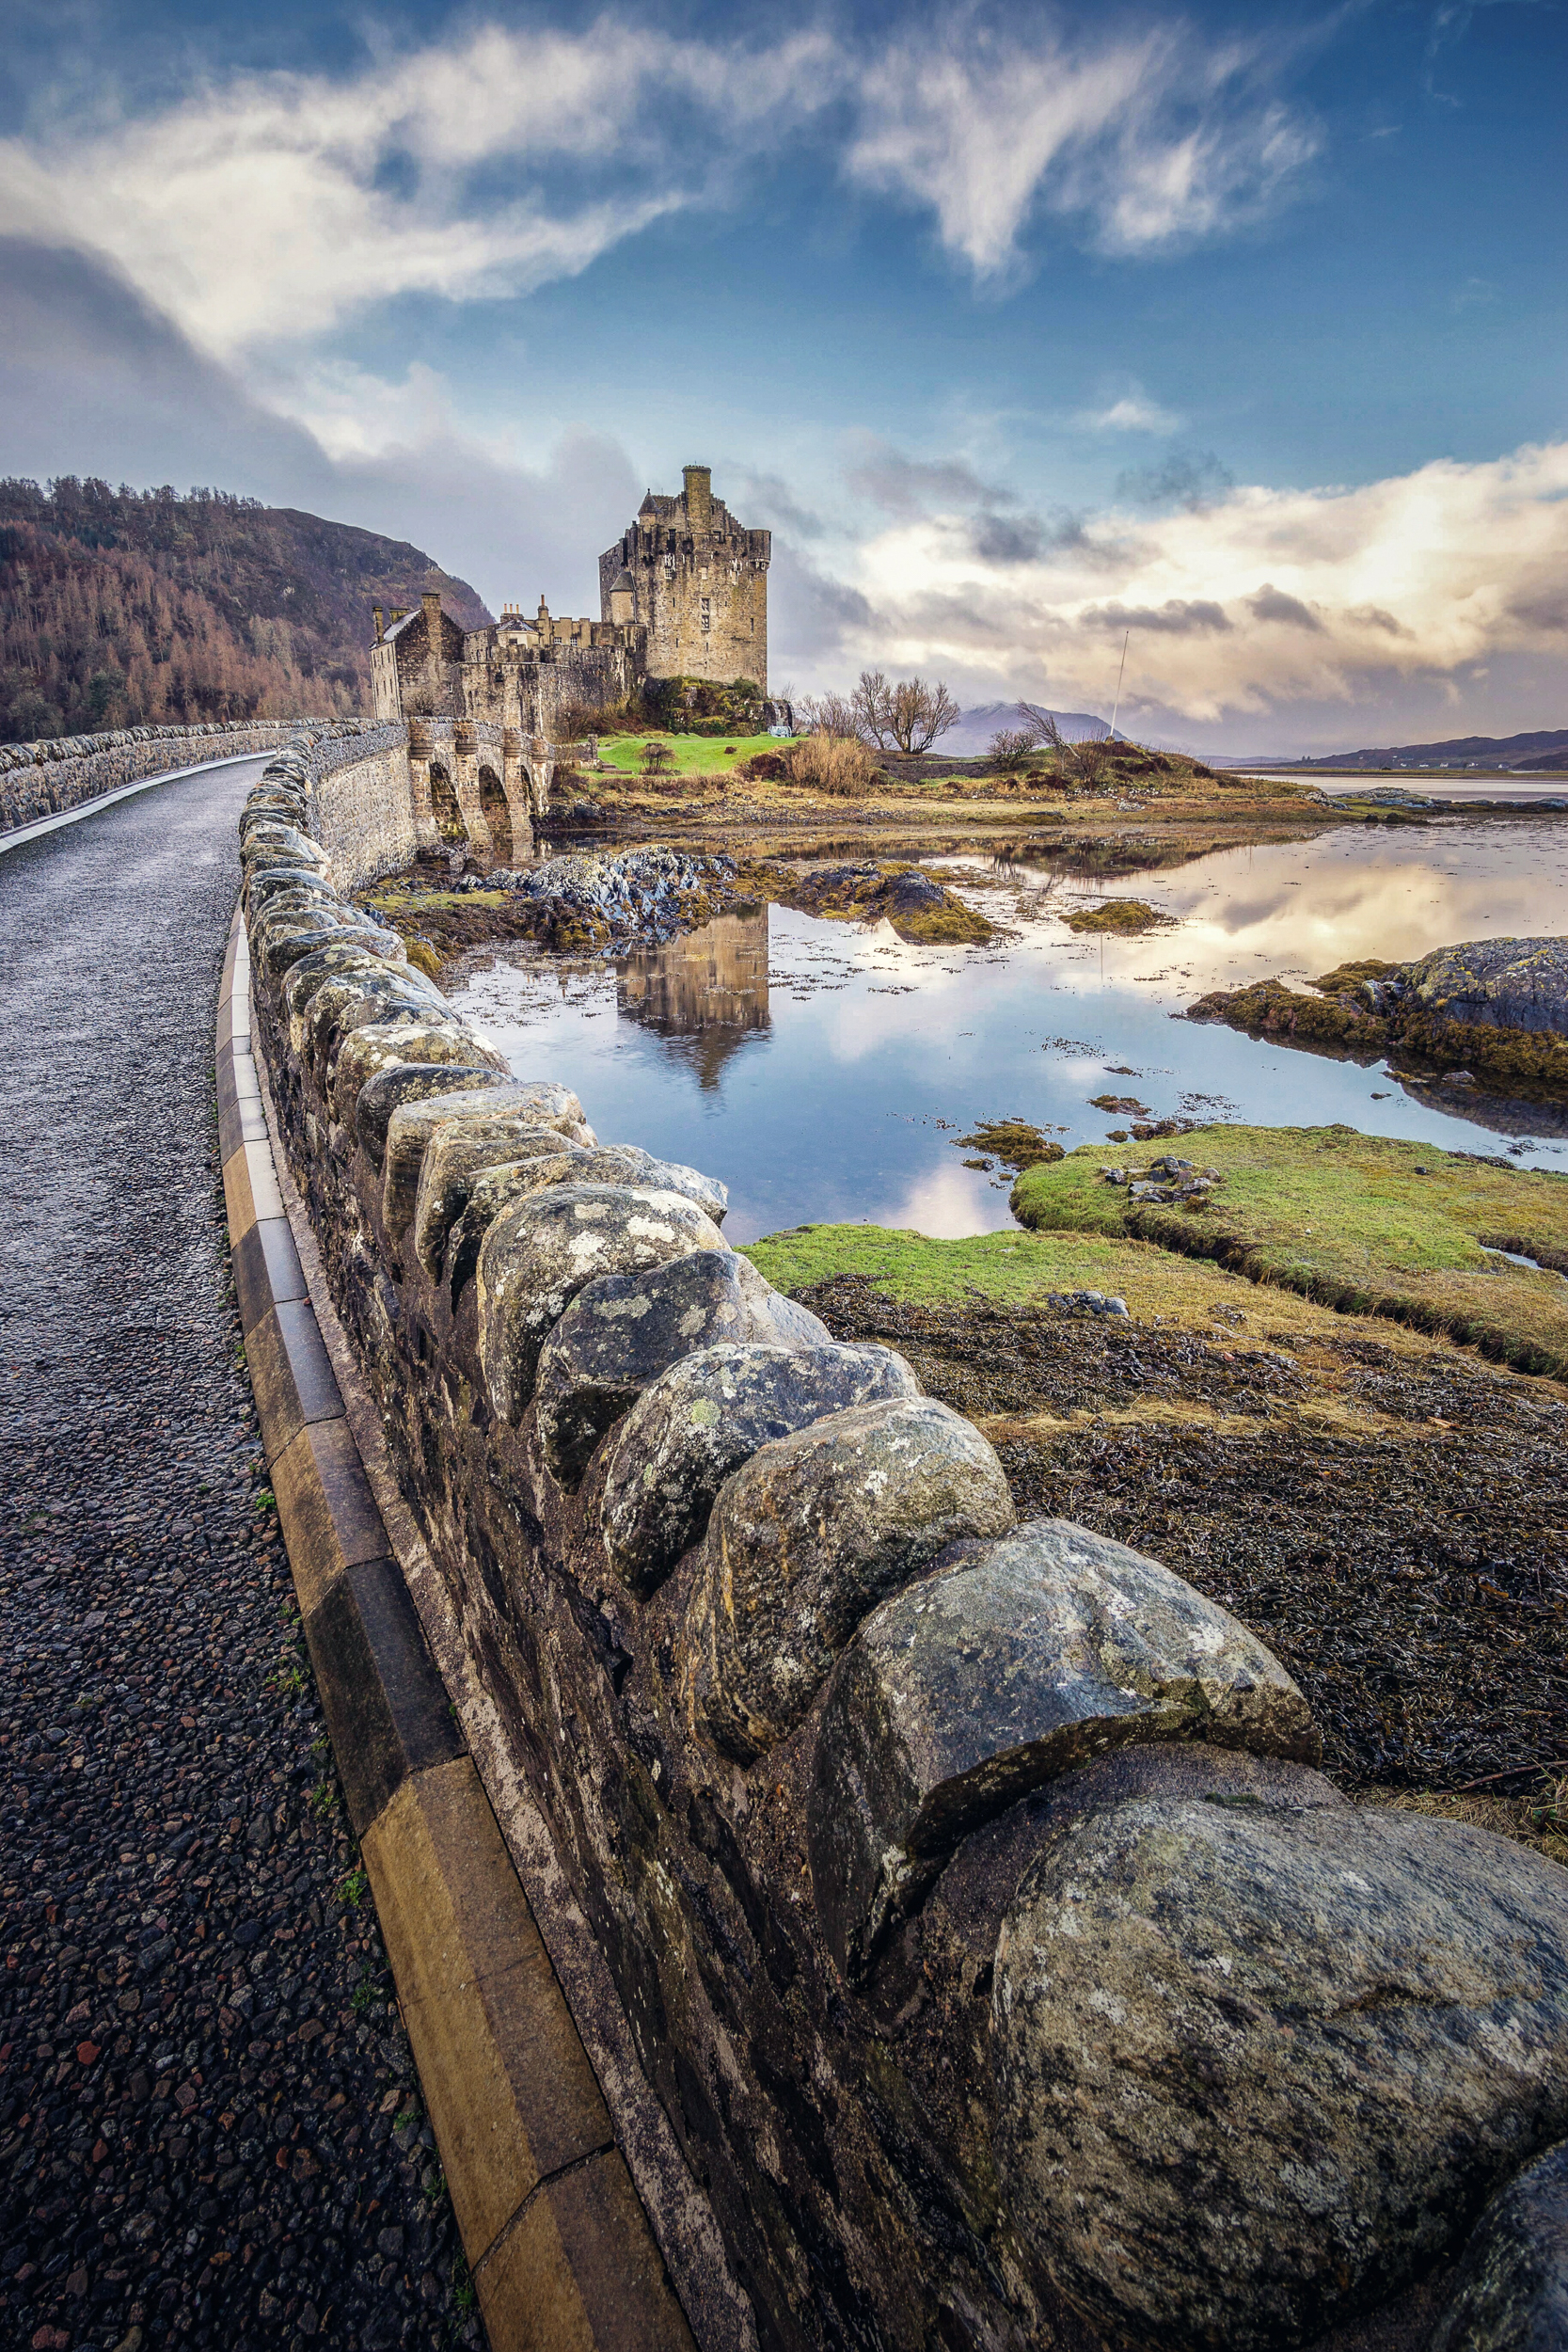 The picturesque Eilean Donan Castle is the first thing you come across when visiting Skye